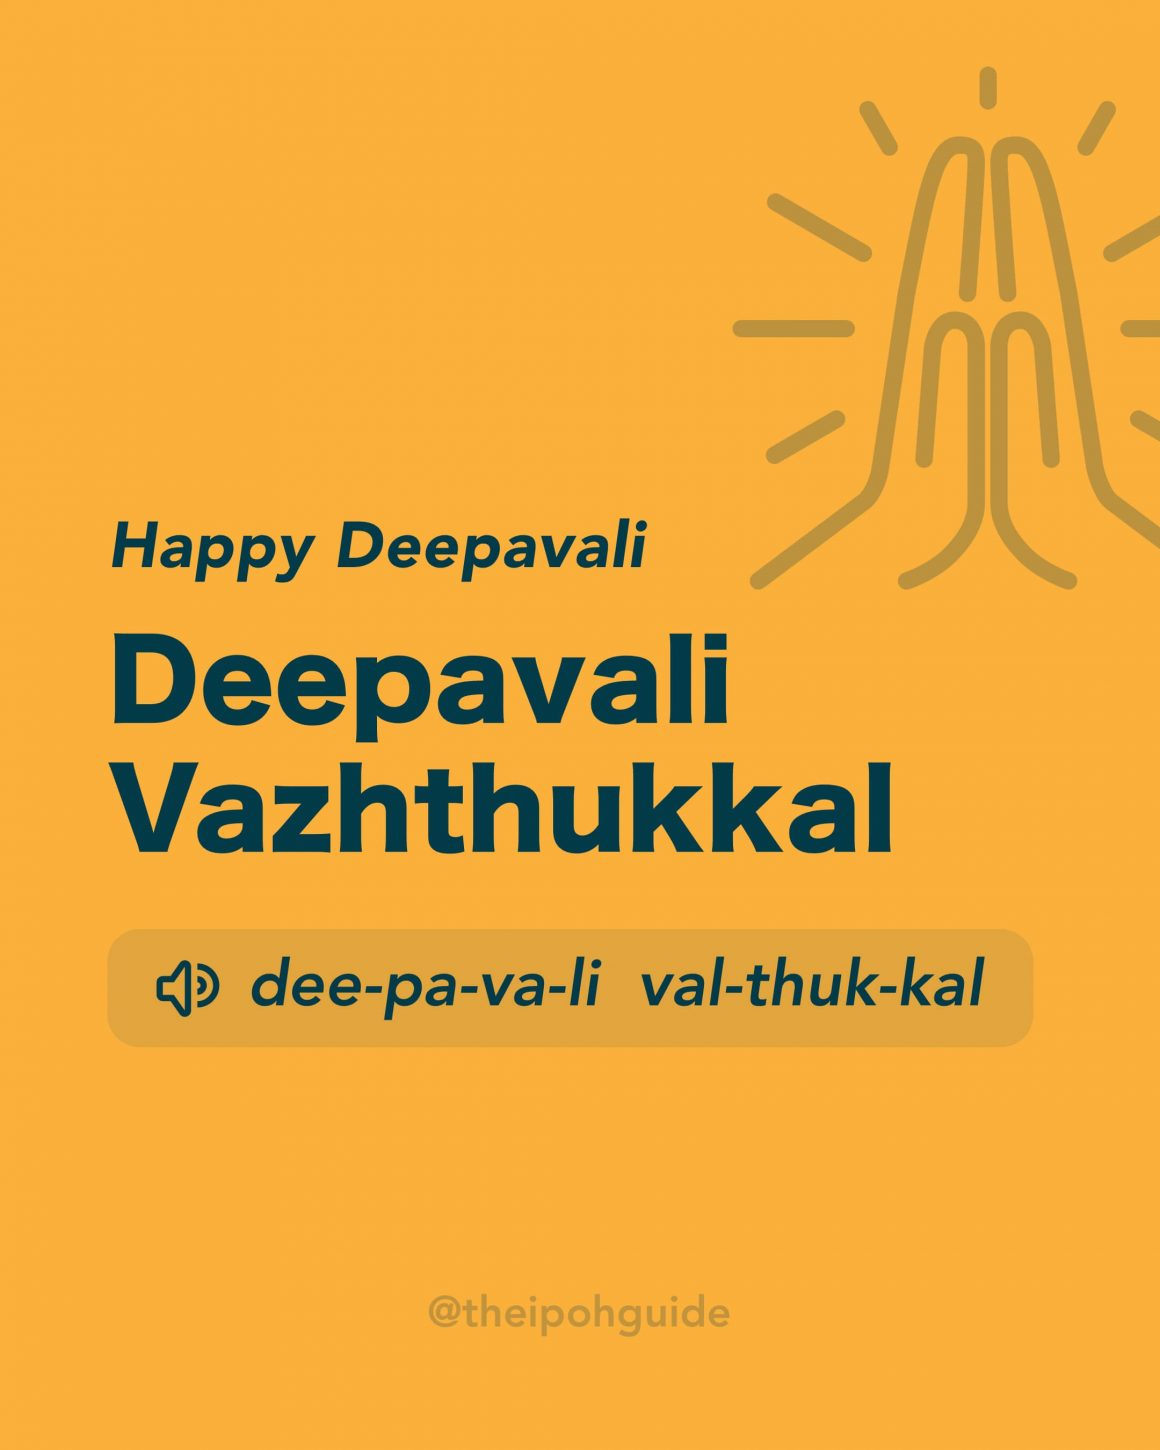 Happy Deepavali in Tamil